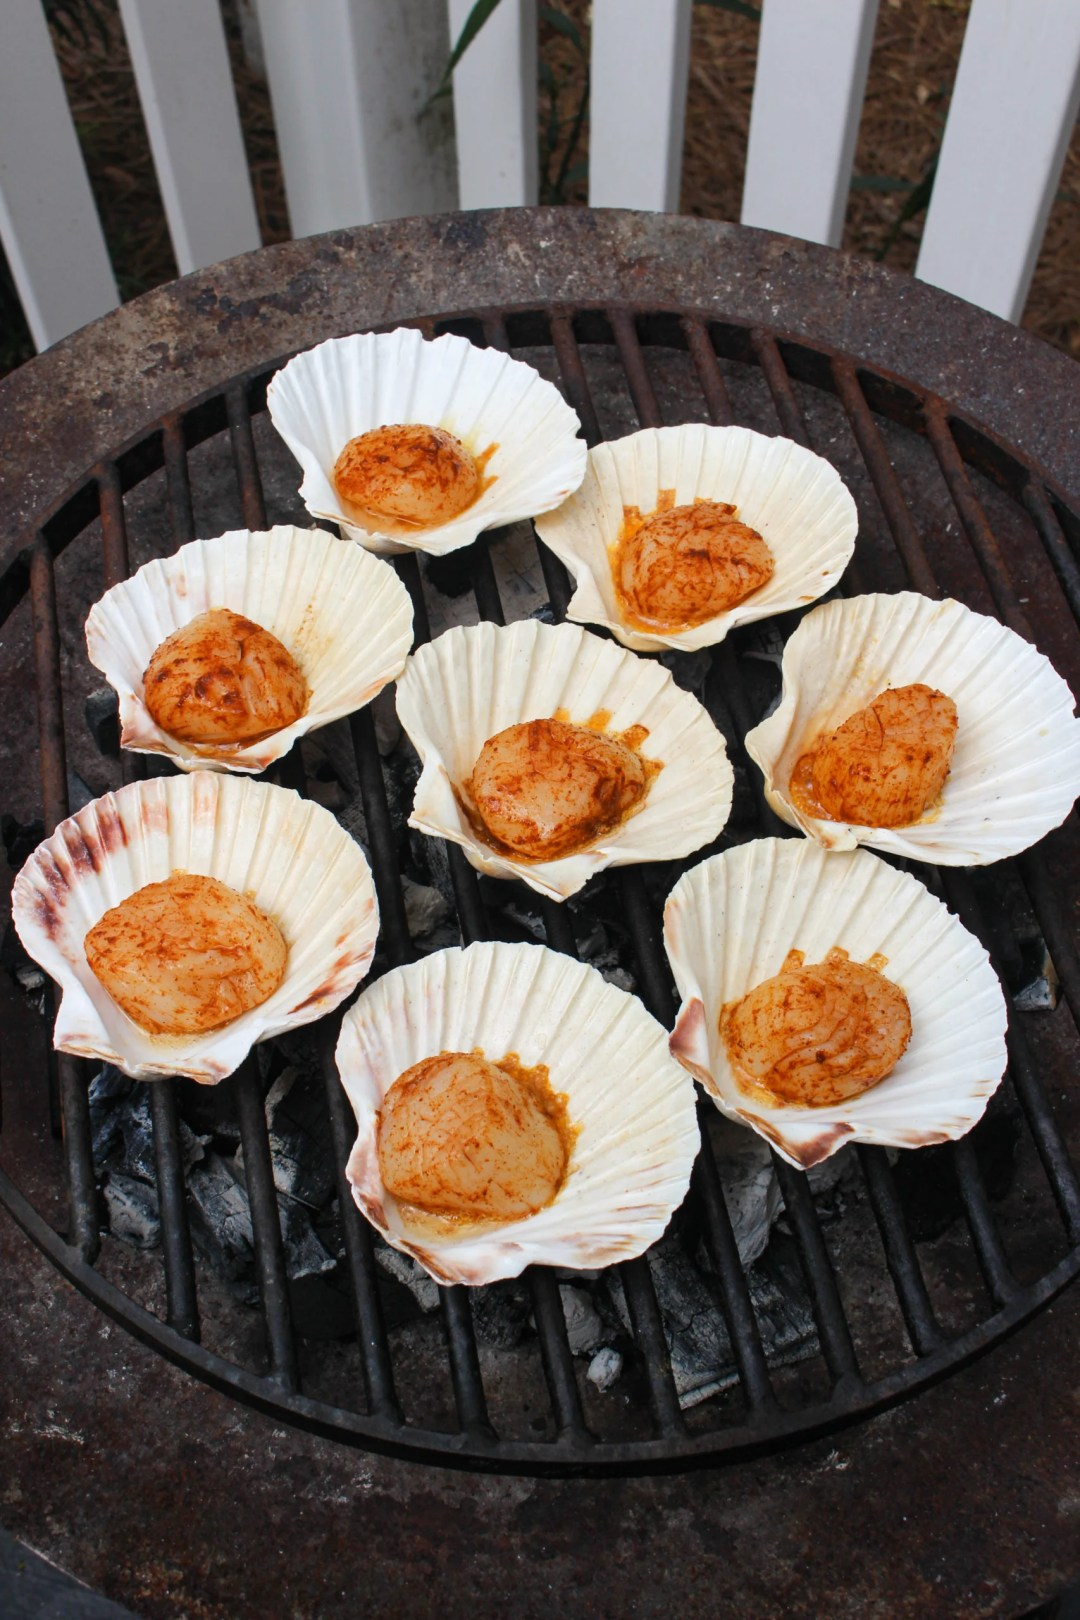 Grilled Scallops in the Shell